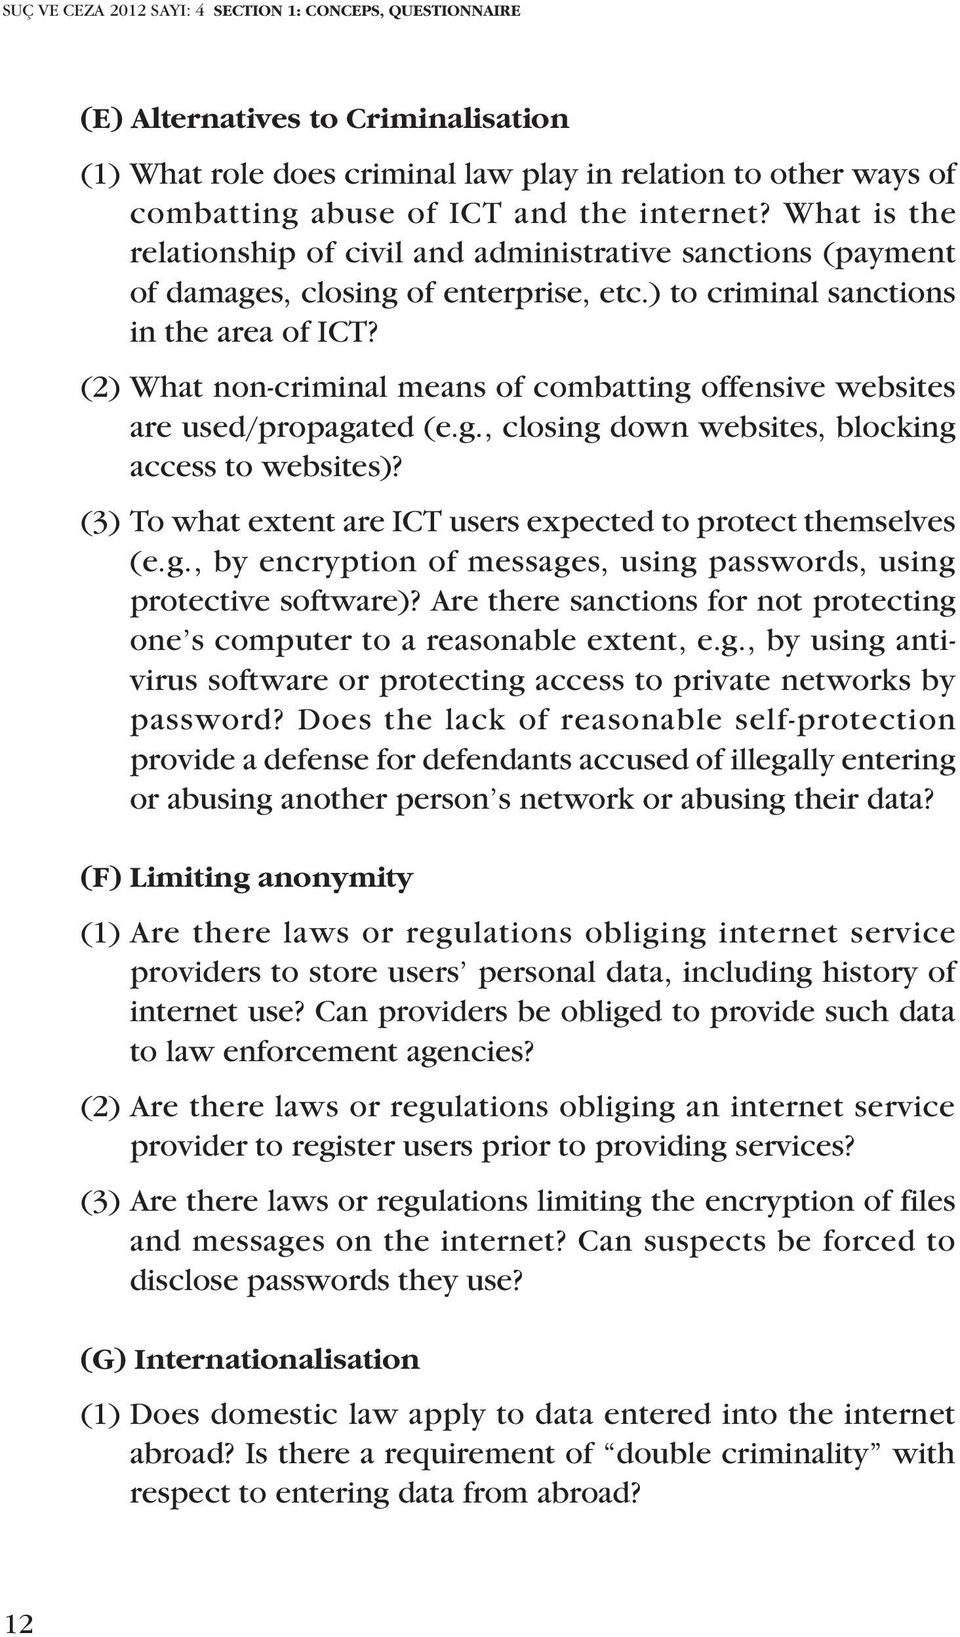 (2) What non-criminal means of combatting offensive websites are used/propagated (e.g., closing down websites, blocking access to websites)?